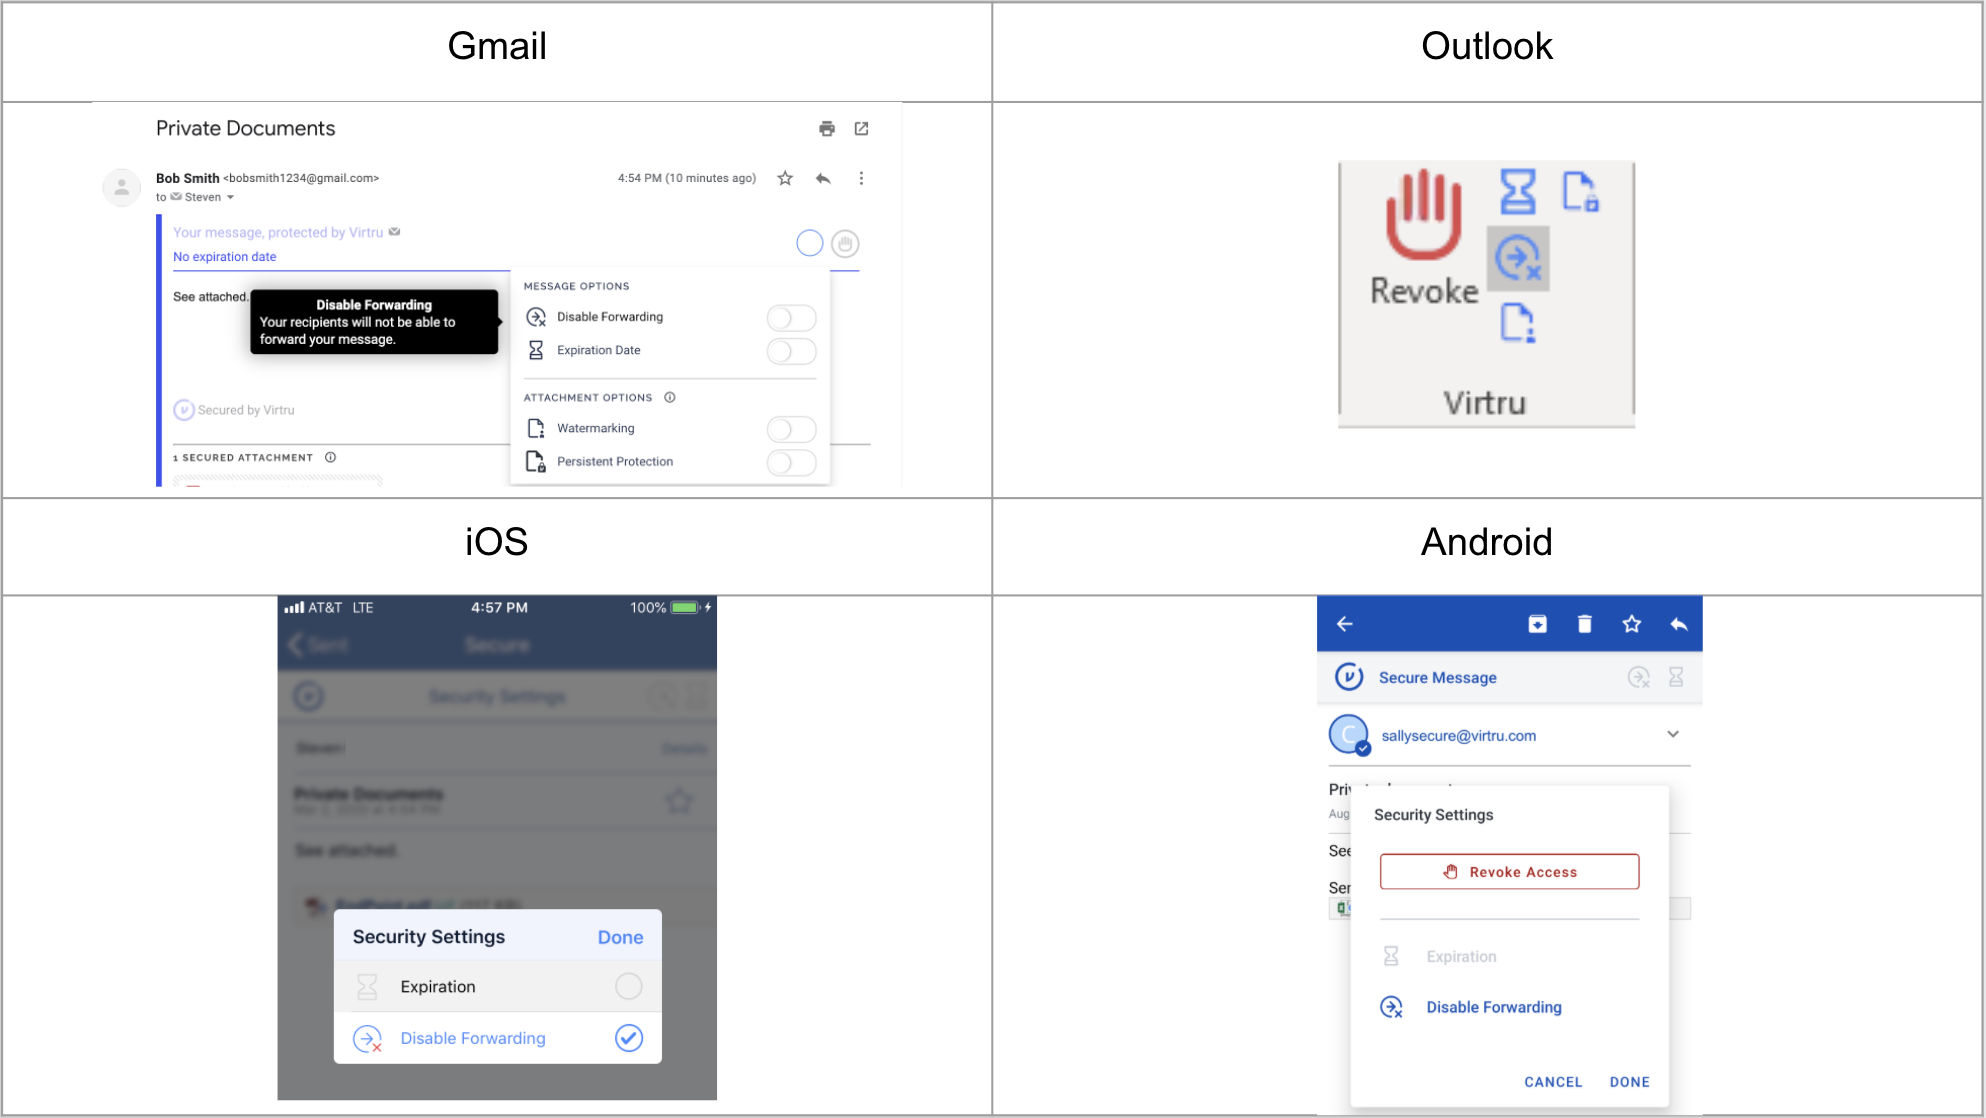 Table showing disable forwarding option in Gmail, Outlook, iOS, and Android Interfaces for Virtru